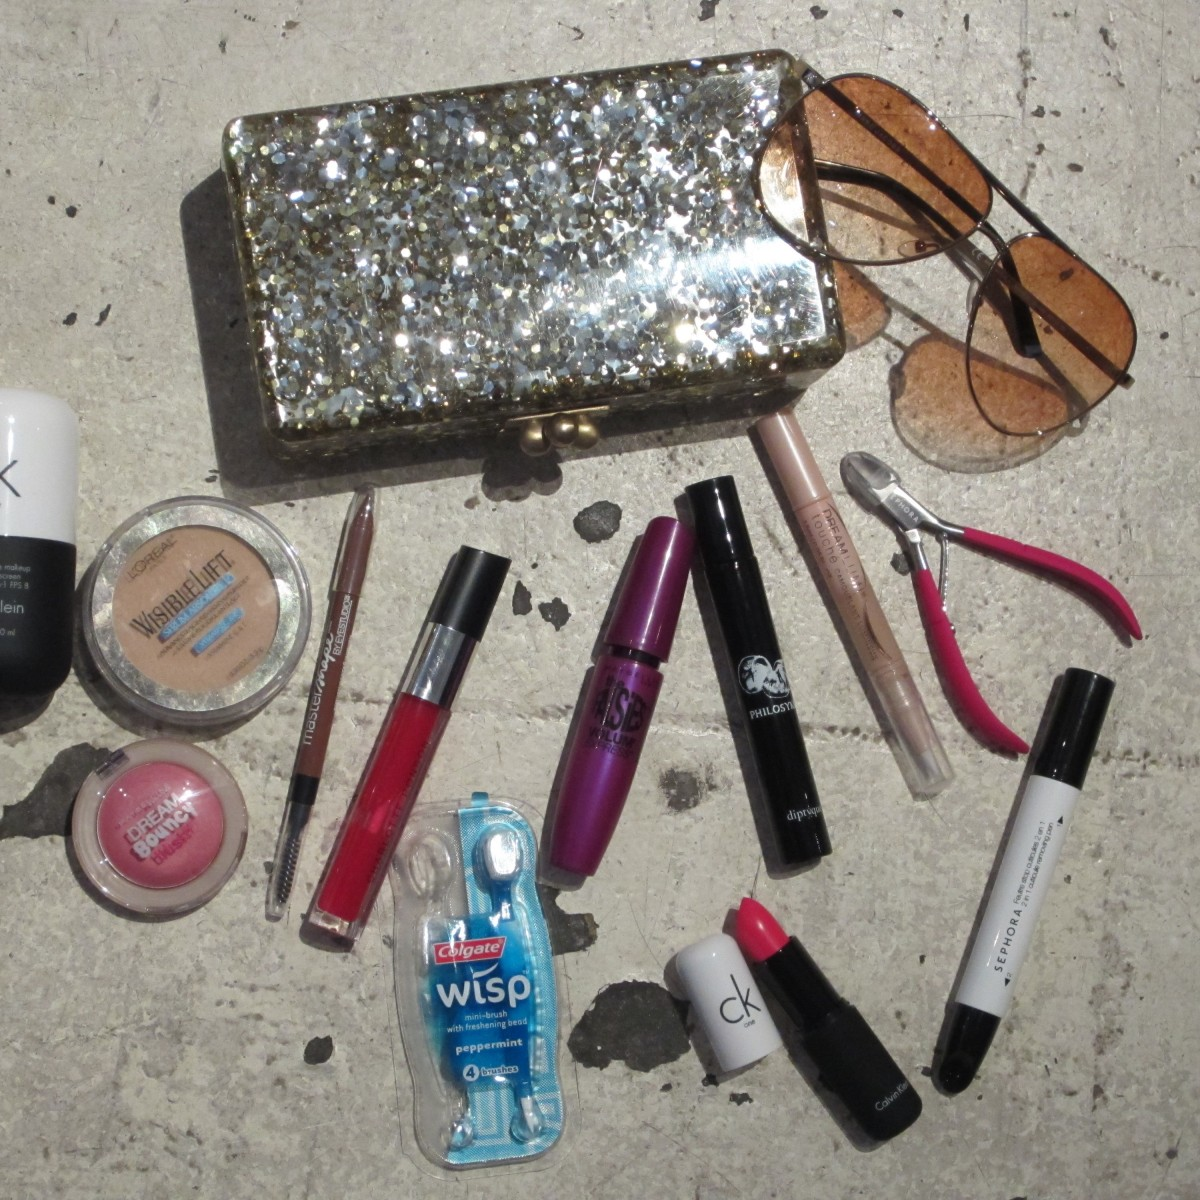 dani_stahl_makeup_bag